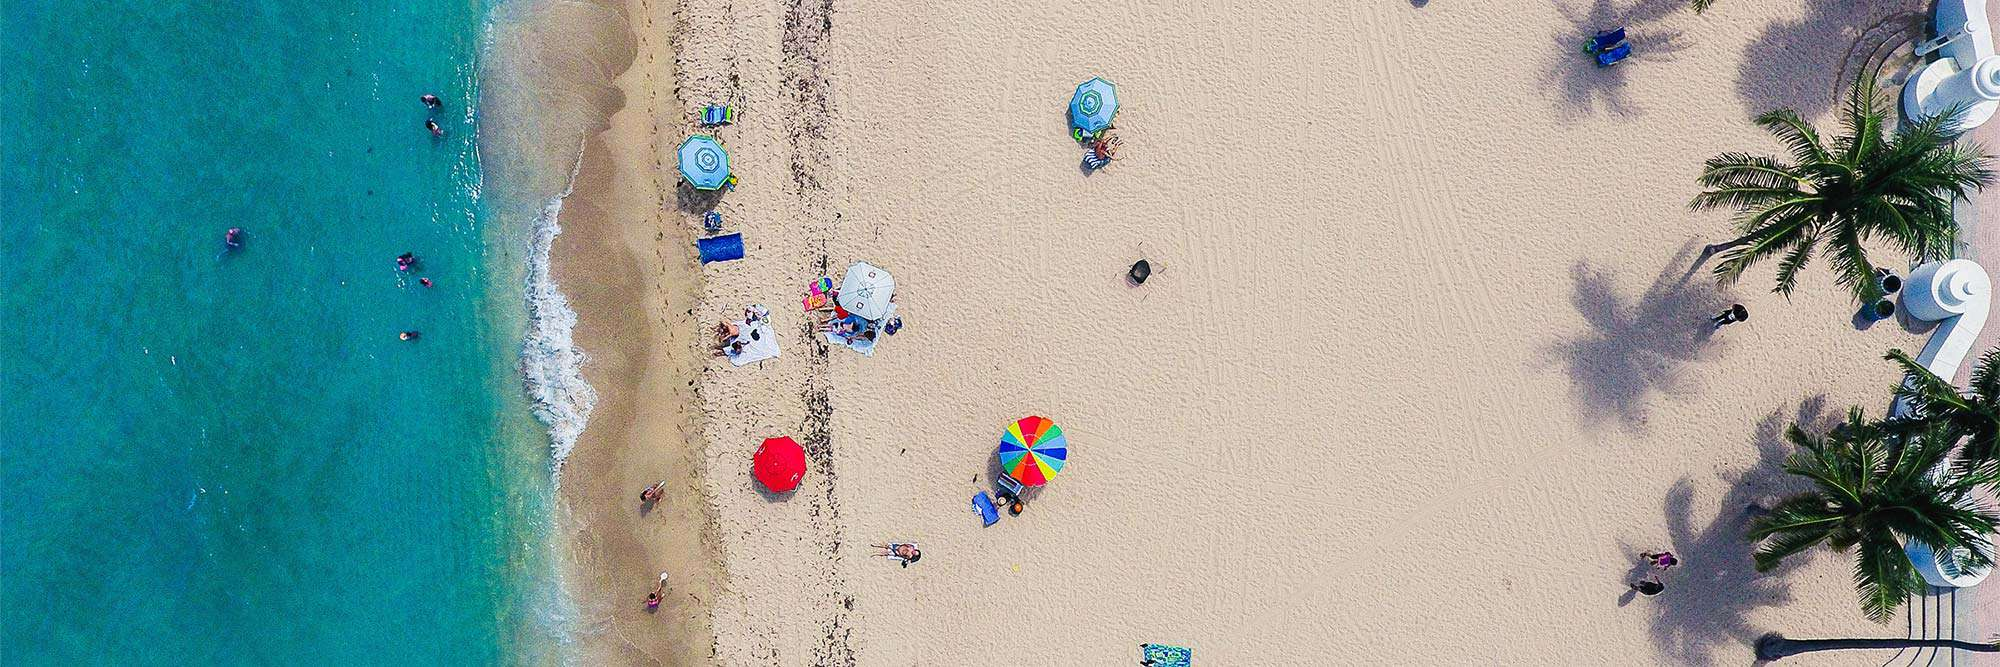 birds eye view of beach